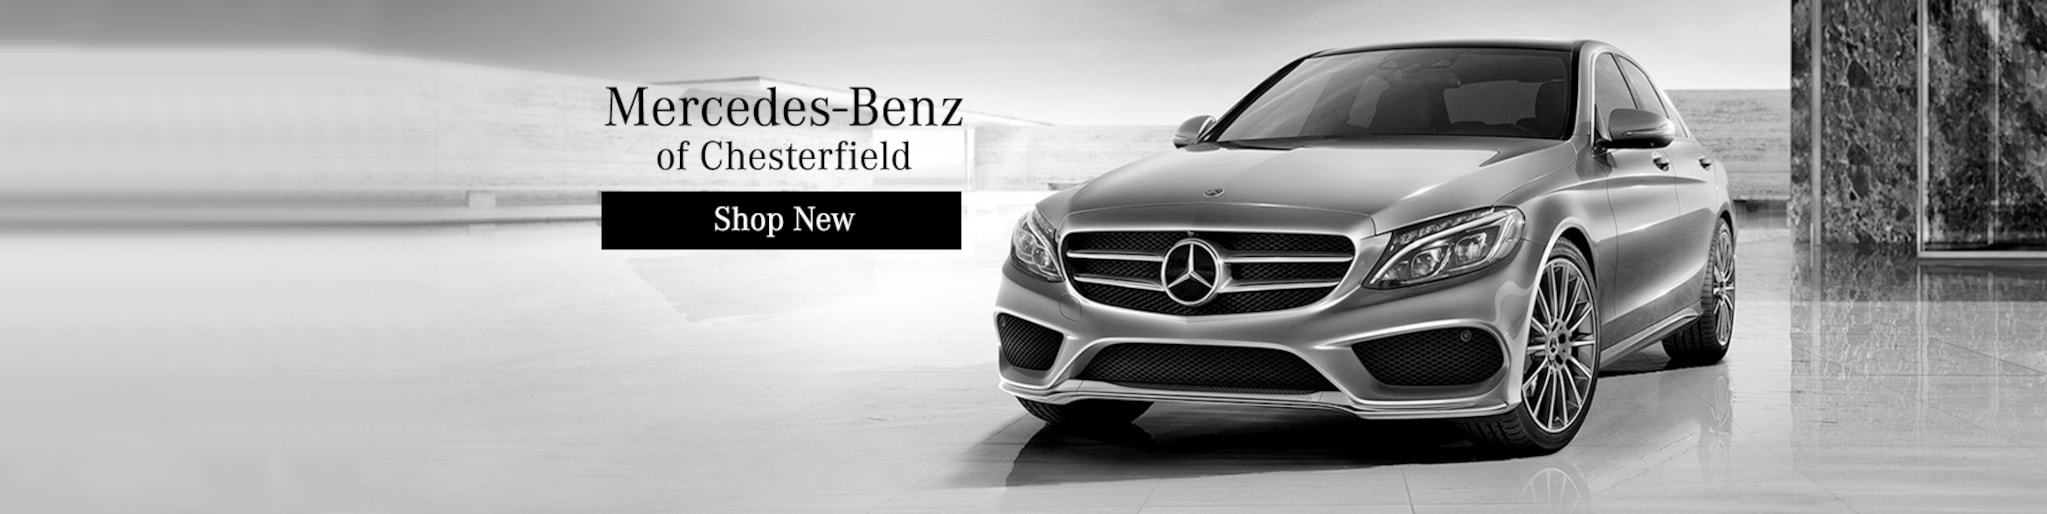 Mercedes benz chesterfield serving st louis mo mercedes for Mercedes benz of st charles